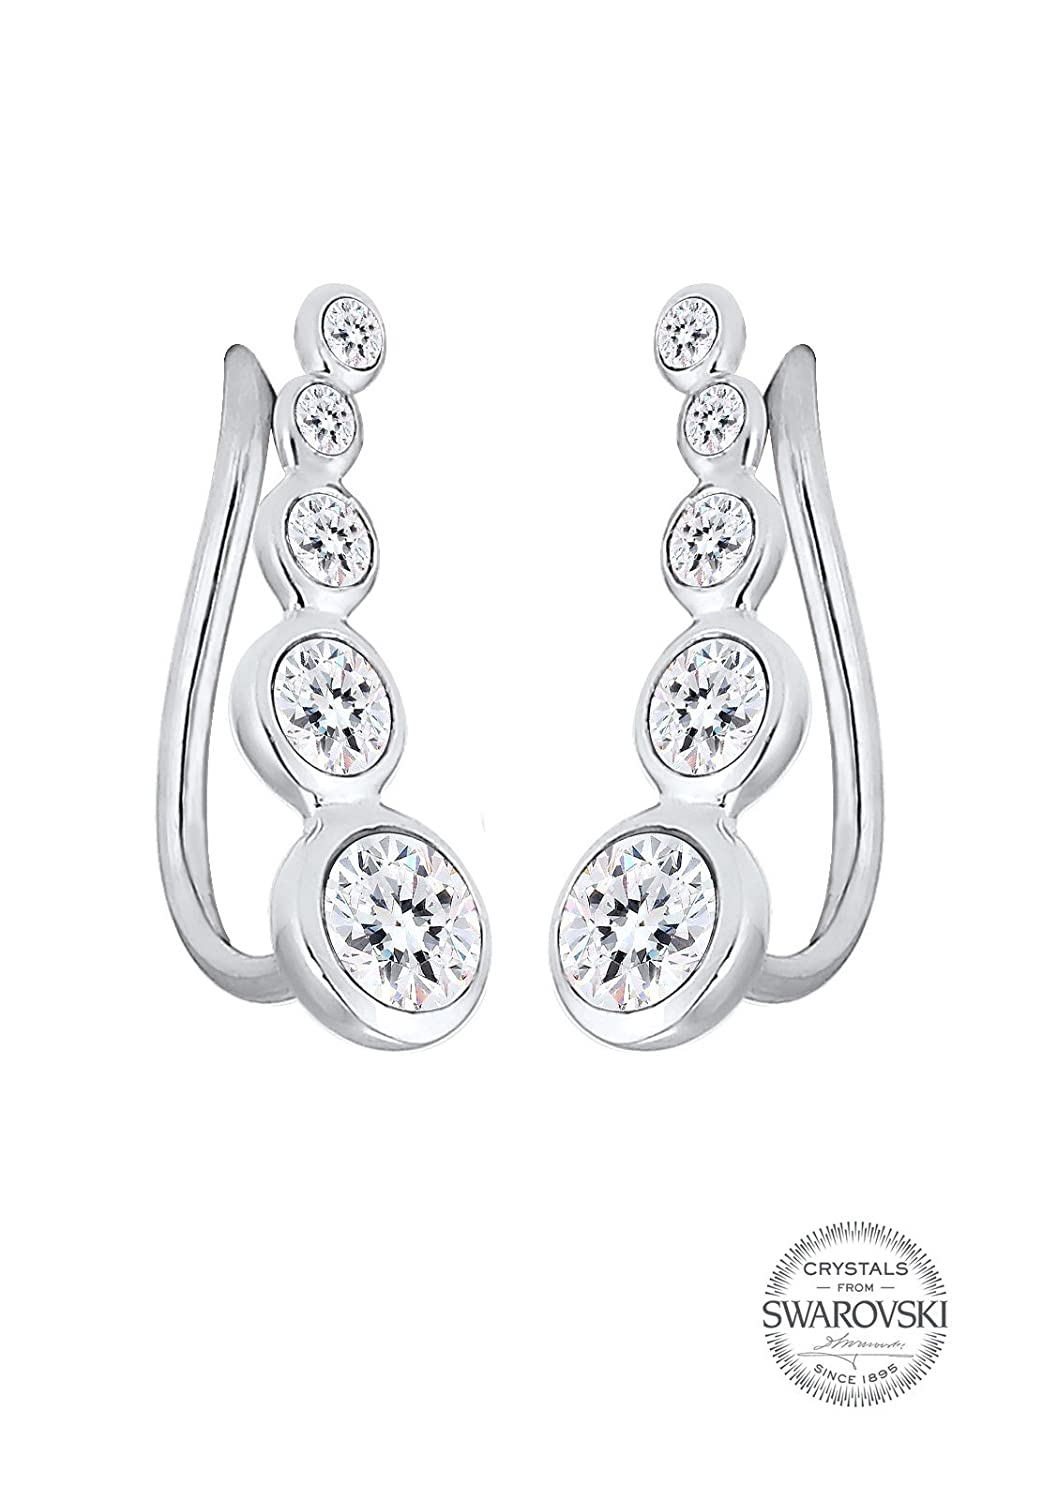 858107b92 Elli Women's Earring Ear Cuff Circle with Swarovski Crystals in 925  Sterling Silver: Amazon.co.uk: Jewellery